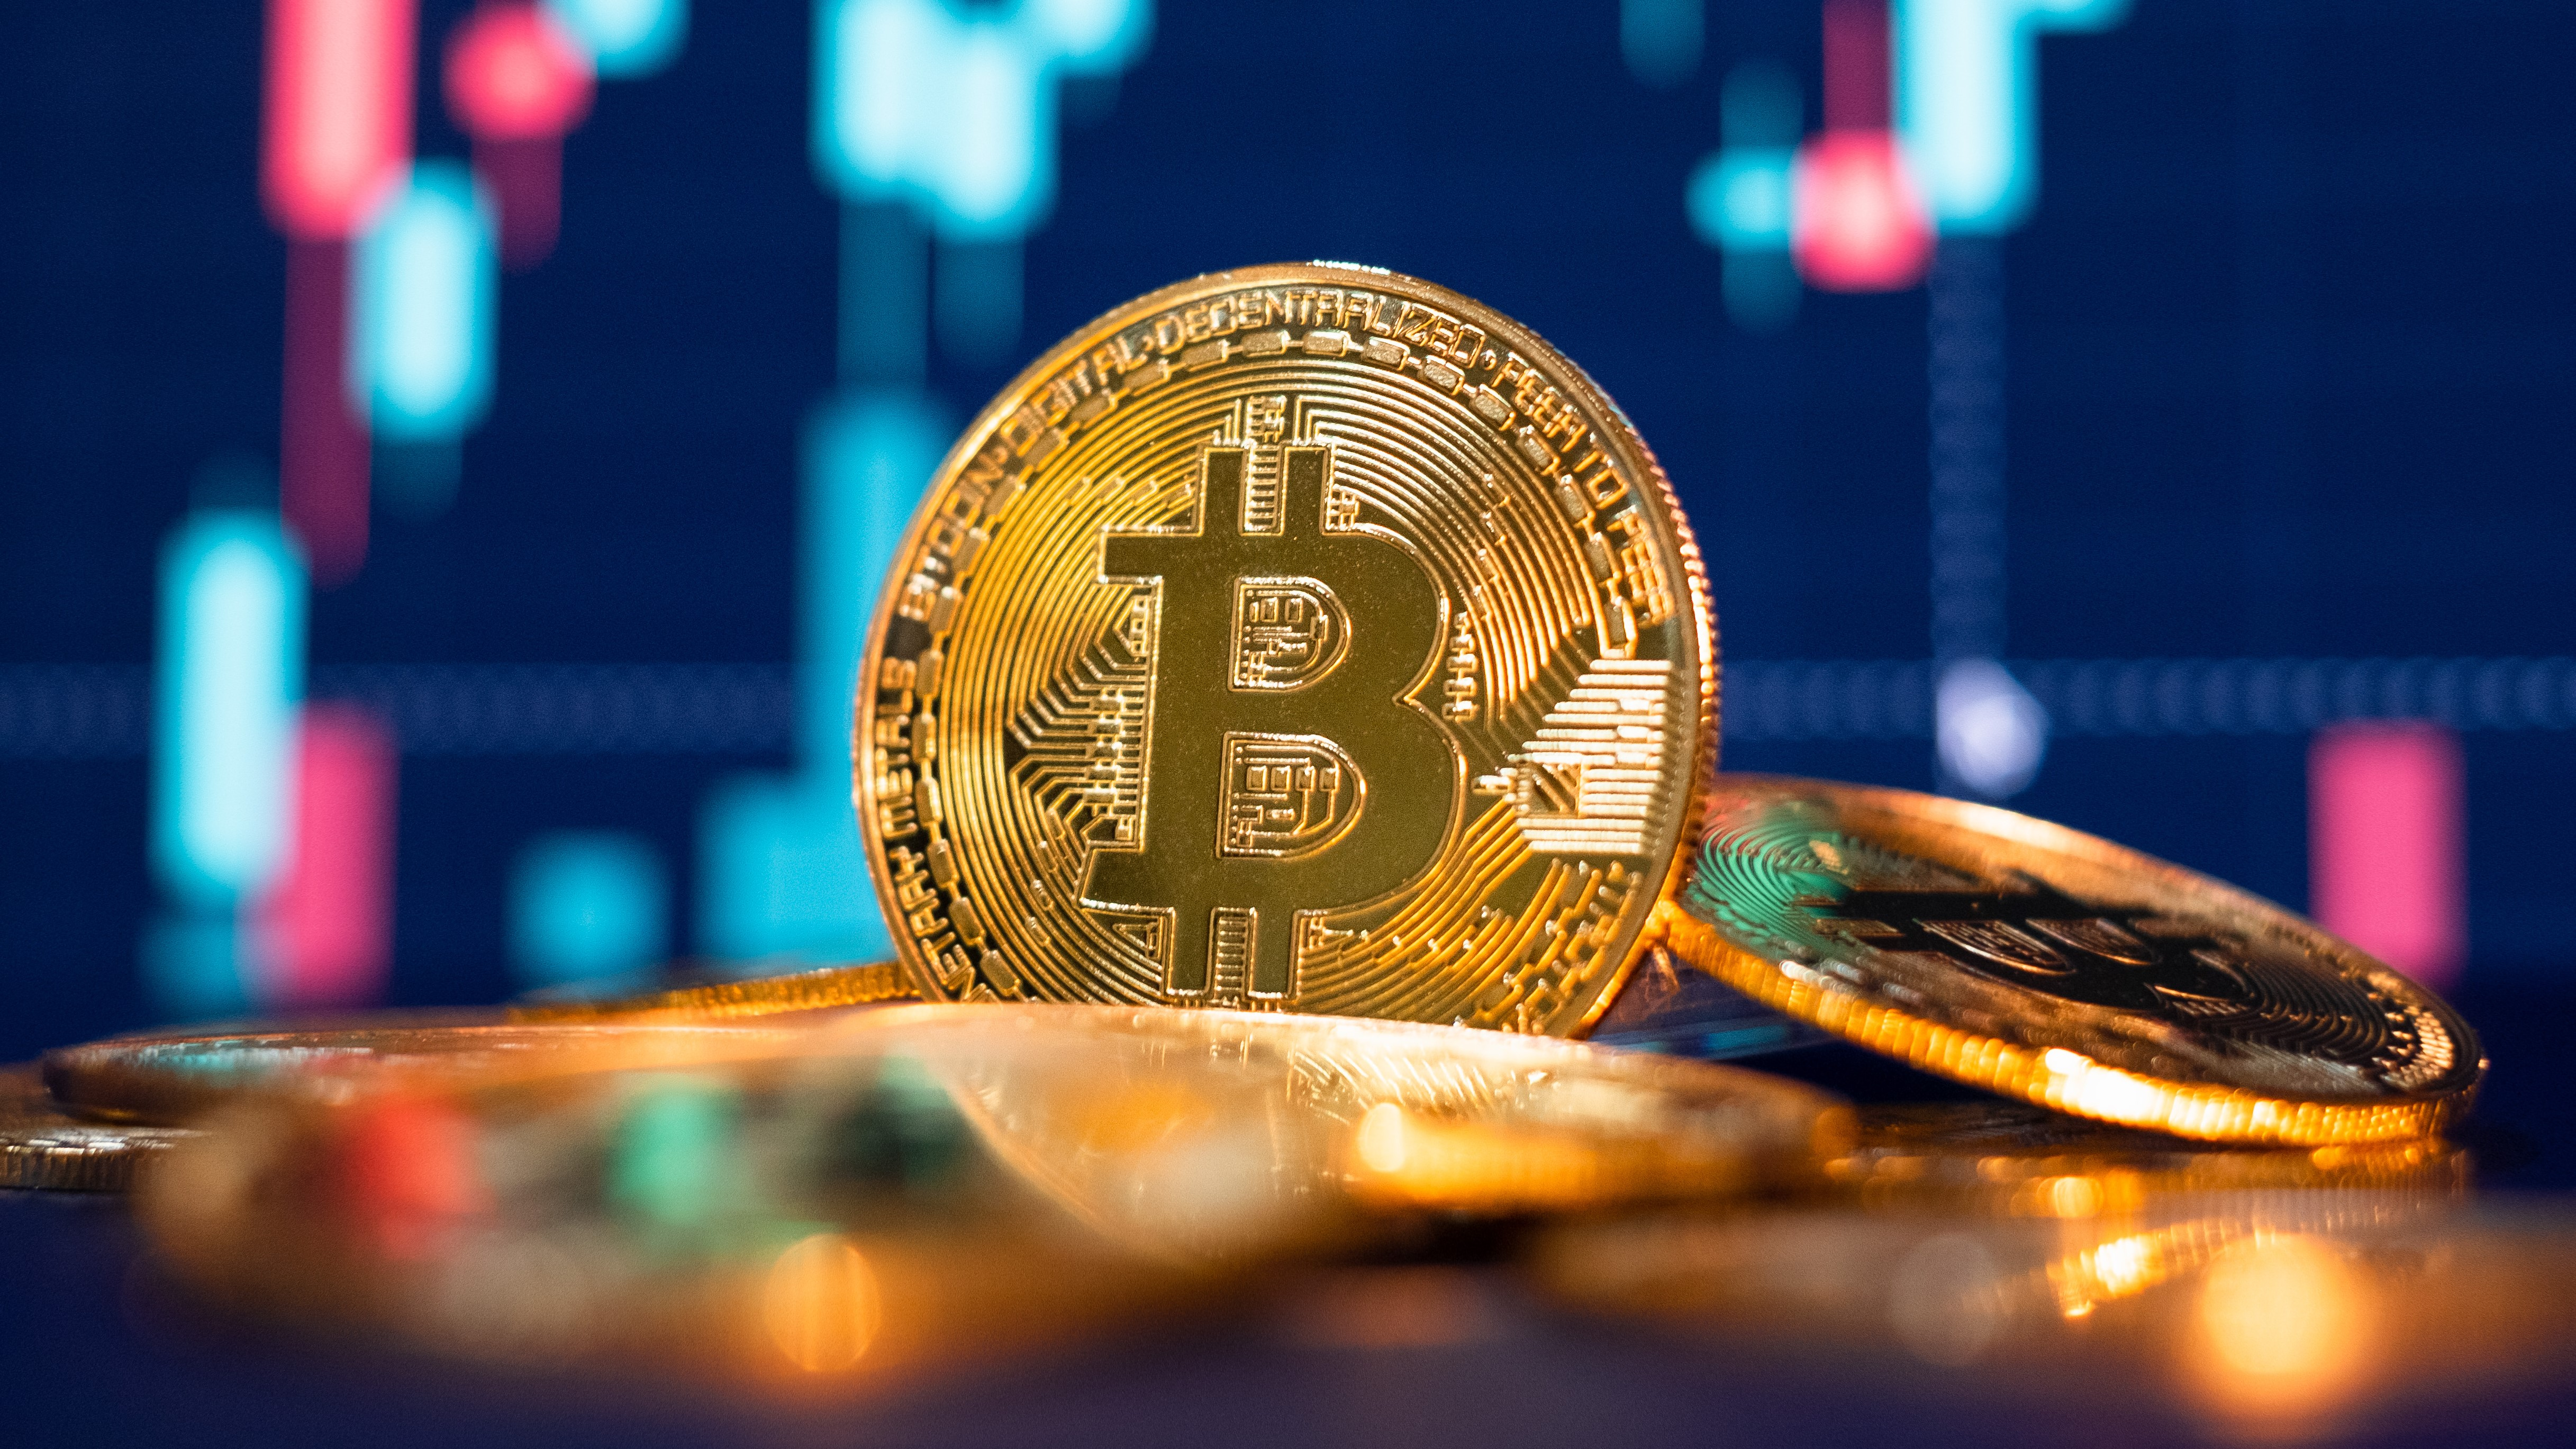 Top cryptocurrency listed — Bitcoin